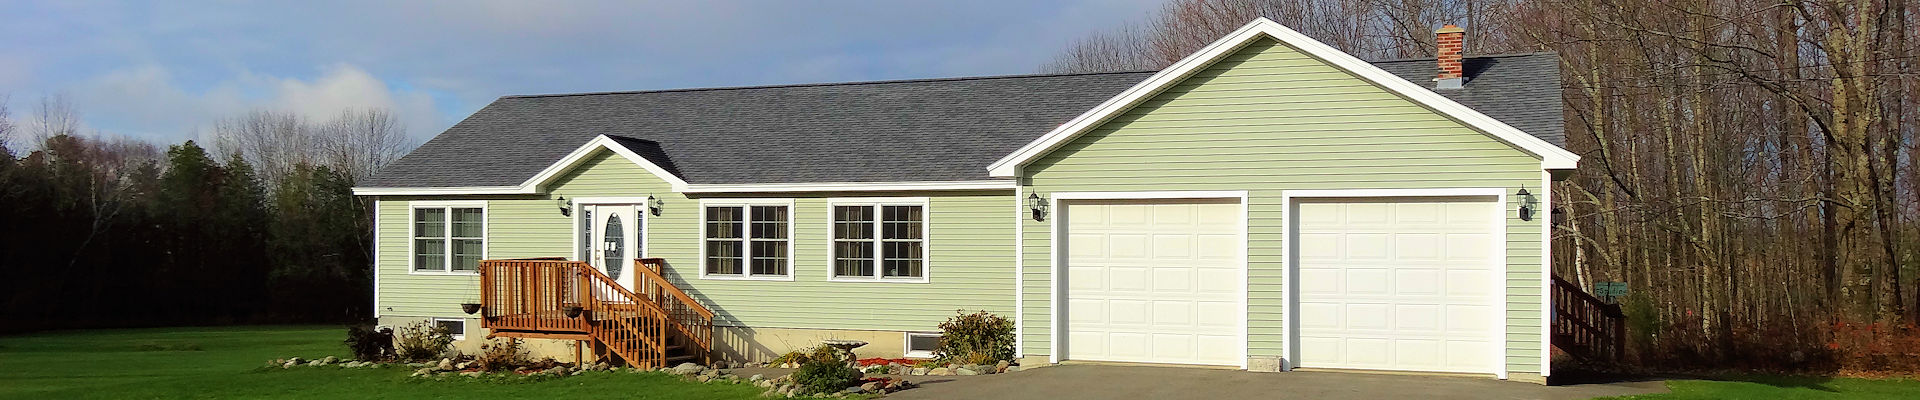 Pittsfield Maine sold house